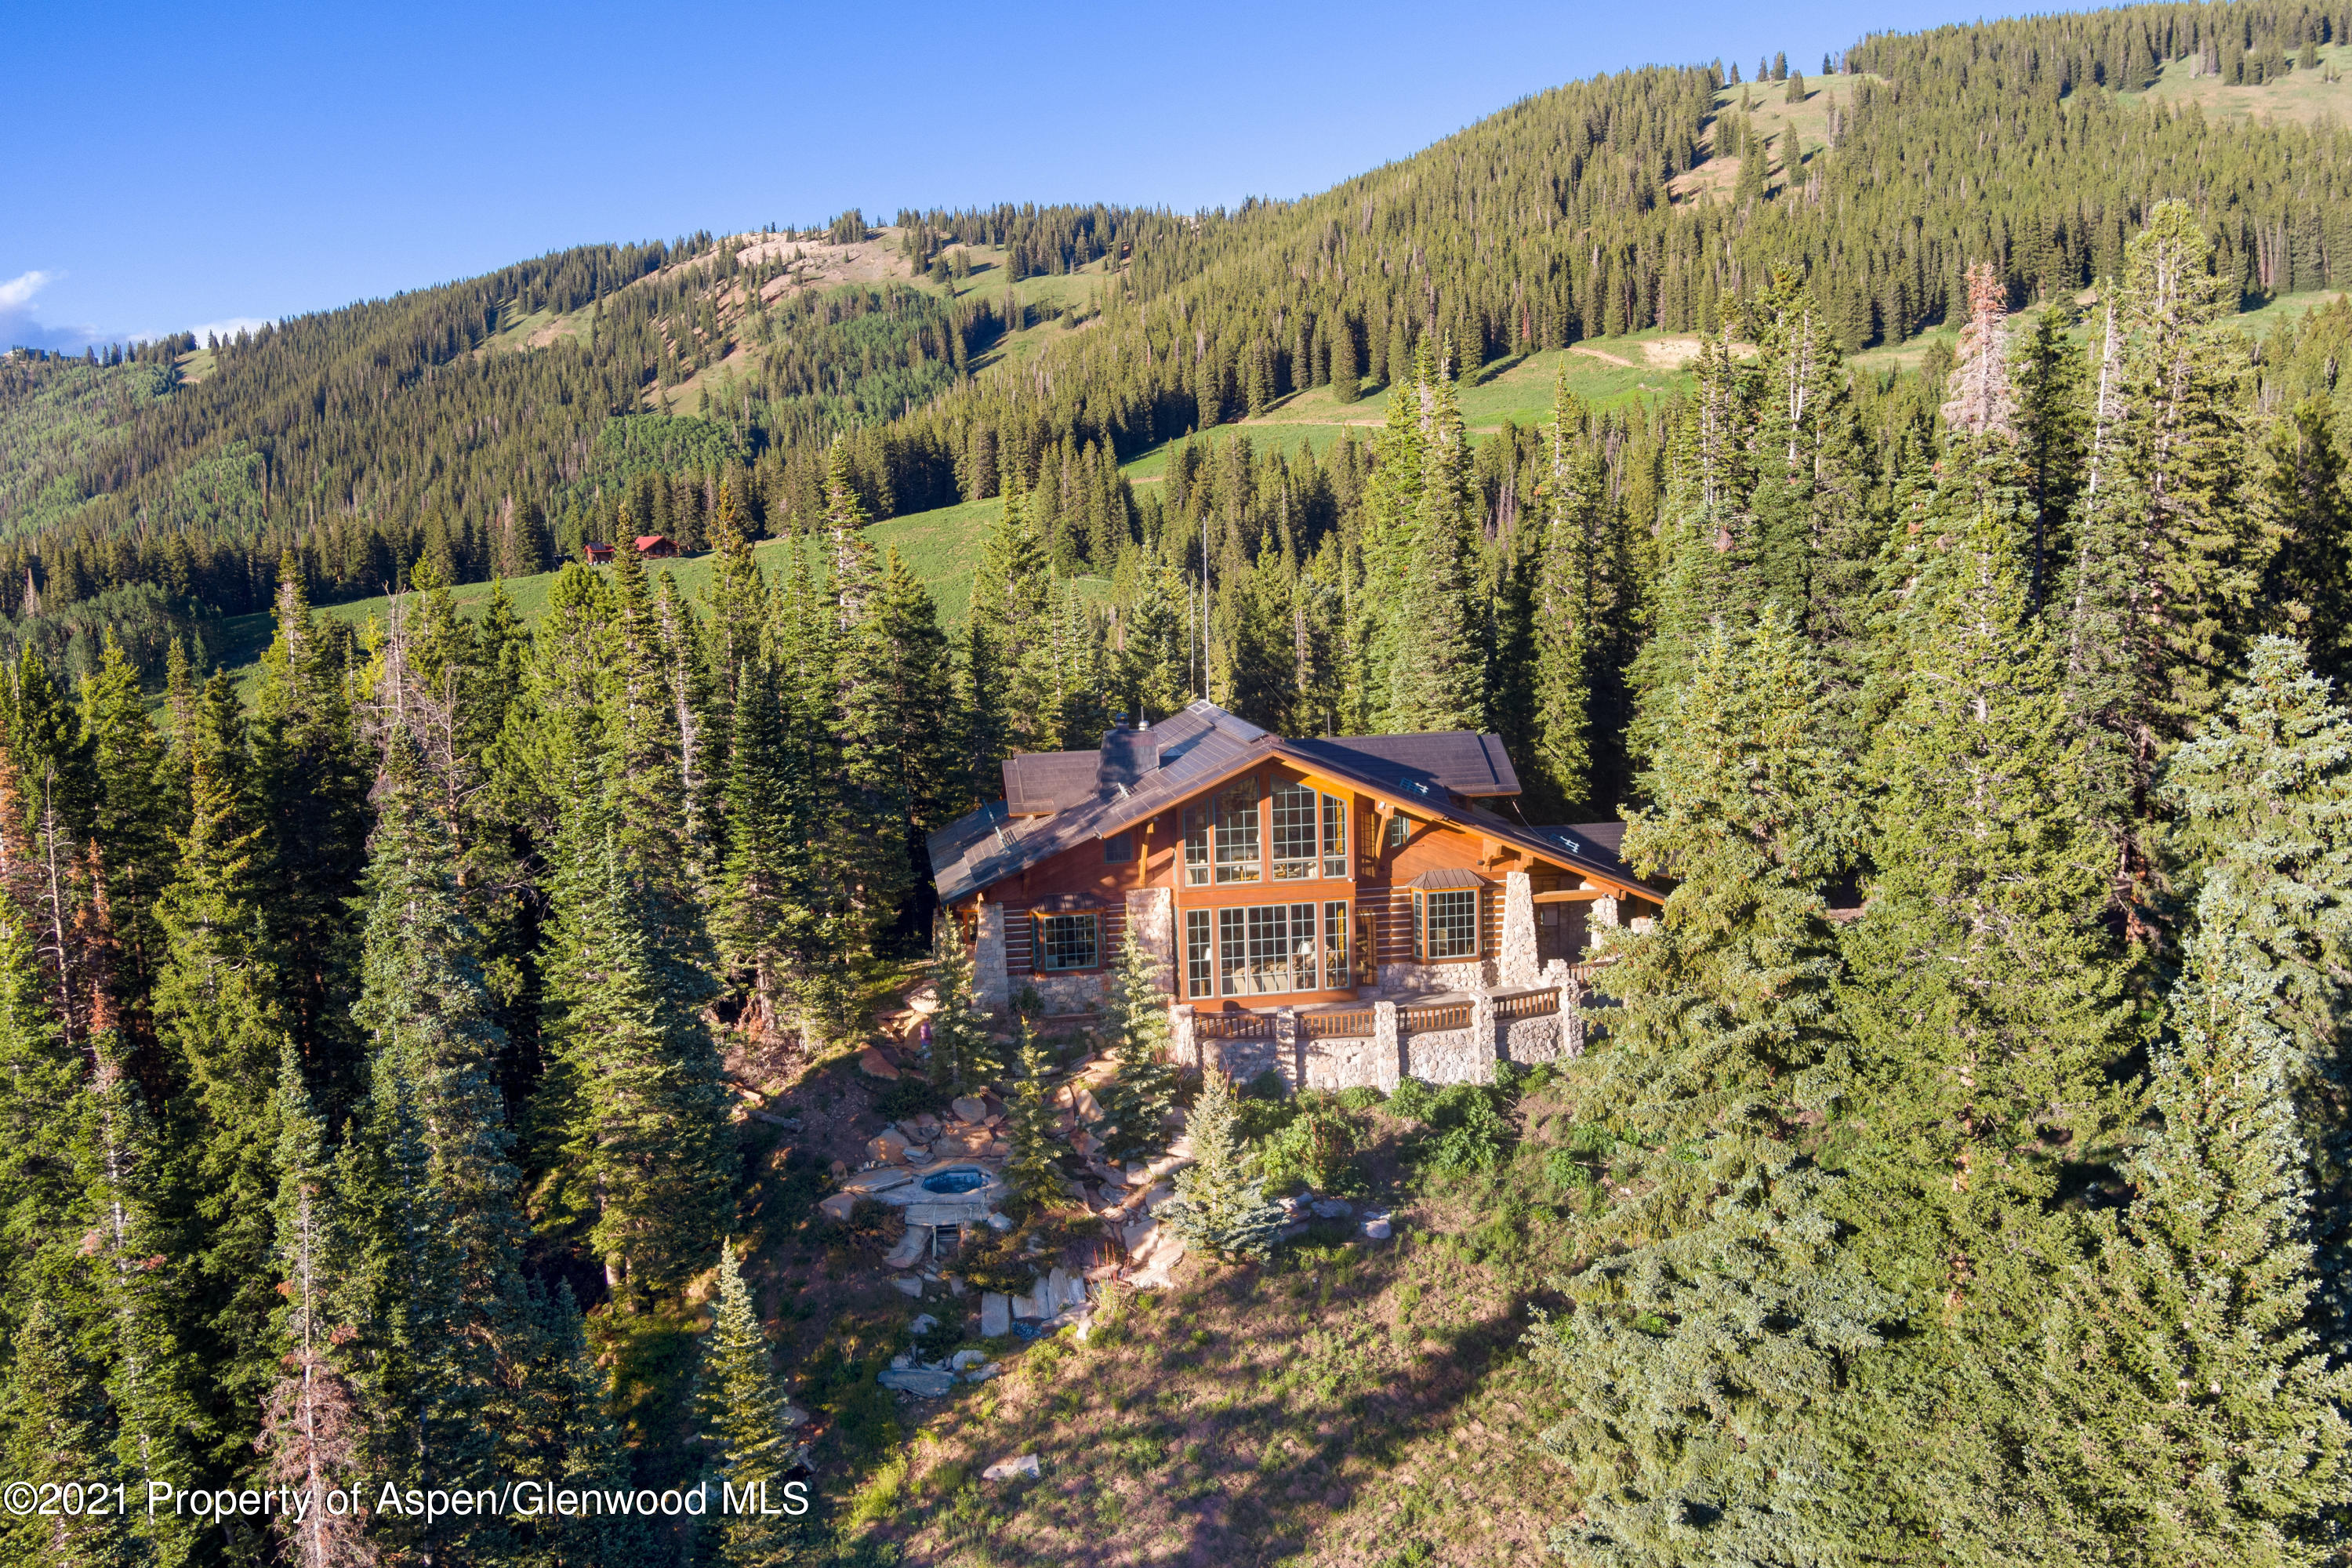 When you dream about living in the mountains, this is what it looks like! This quintessential Aspen Ski Chalet is situated on 48 acres on a private ridge on the backside of Aspen Mountain at the confluence of Little Annie's Basin and Midnight Mine Road. Ski home from Ajax or ski tour out your front door. Timeless woodworking and custom craftsmanship by Rutger's Construction distinguishes the 3,461 sq.ft. main house with four ensuite bedrooms plus powder room, gym and library, den. Floor to ceiling windows in the great room and upper-level master bedroom capture perfectly framed views. A two-bedroom guest house equipped with kitchen and wood stove is located below the main house. This is the ultimate Aspen Mountain ski retreat with forever views and surrounded by White River National Forest When you dream about living in the mountains, this is what it looks like! This quintessential Aspen Ski Chalet is situated on 48 acres on a private ridge on the backside of Aspen Mountain at the confluence of Little Annie's Basin and Midnight Mine Road. Ski home from the Sundeck and Silver Queen Gondola or ski tour Little Annie's out your front door. Timeless woodworking and custom craftsmanship designed by Wayne Paulson and built by Rutger's Construction distinguishes the 3,461 sq. ft. irreplaceable main house with four en suite bedrooms plus powder room, gym and library, den. Floor to ceiling, south facing windows in the great room and upper-level master bedroom capture perfectly framed views of Five Fingers, Conundrum Valley, Highlands Bowl and Ski Hayden. The open great room is centered around a Colorado moss rock wood-burning fireplace that warms the home. Pine flooring and radiant heat are throughout. A library, den media room with flatscreen and built-ins for your favorite books is ideal for post ski movies or a cozy read. A main level guest master suite with vaulted cupola spa bathroom includes separate marble shower, dual vanities and a soaking tub that looks out over the